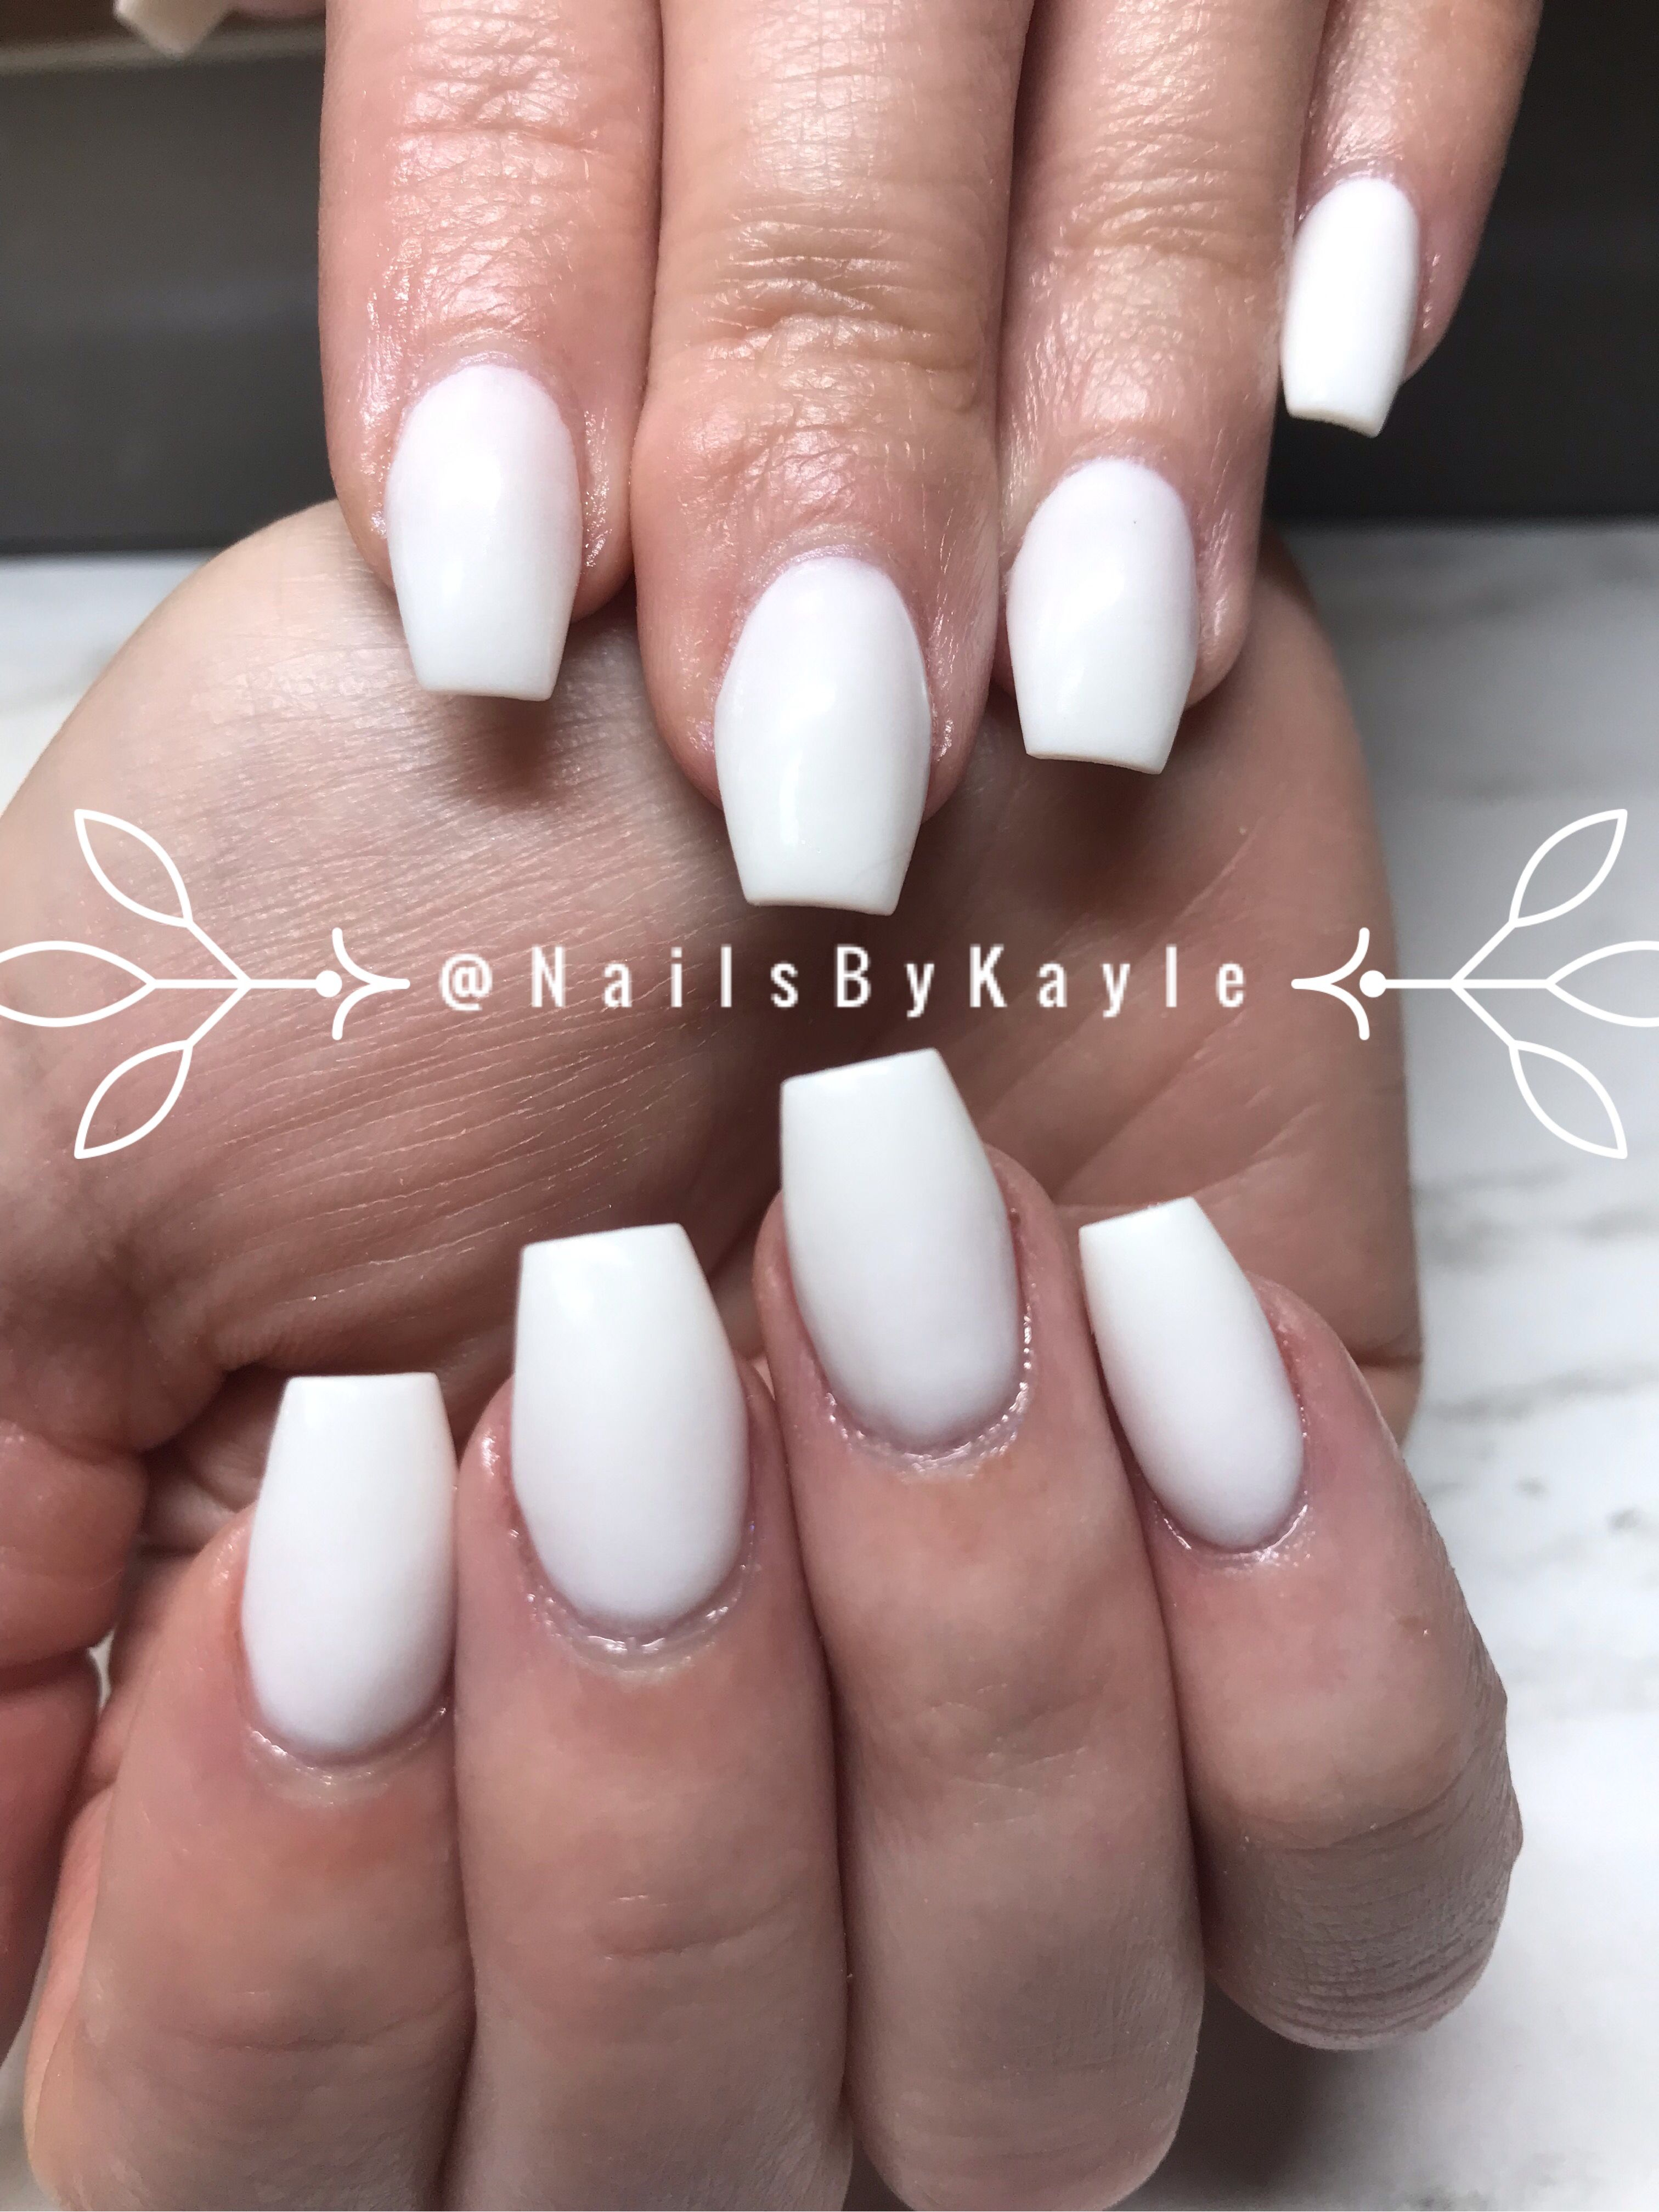 Simple White Coffin Nails Short Coffin Nails Designs Short Coffin Nails White Coffin Nails